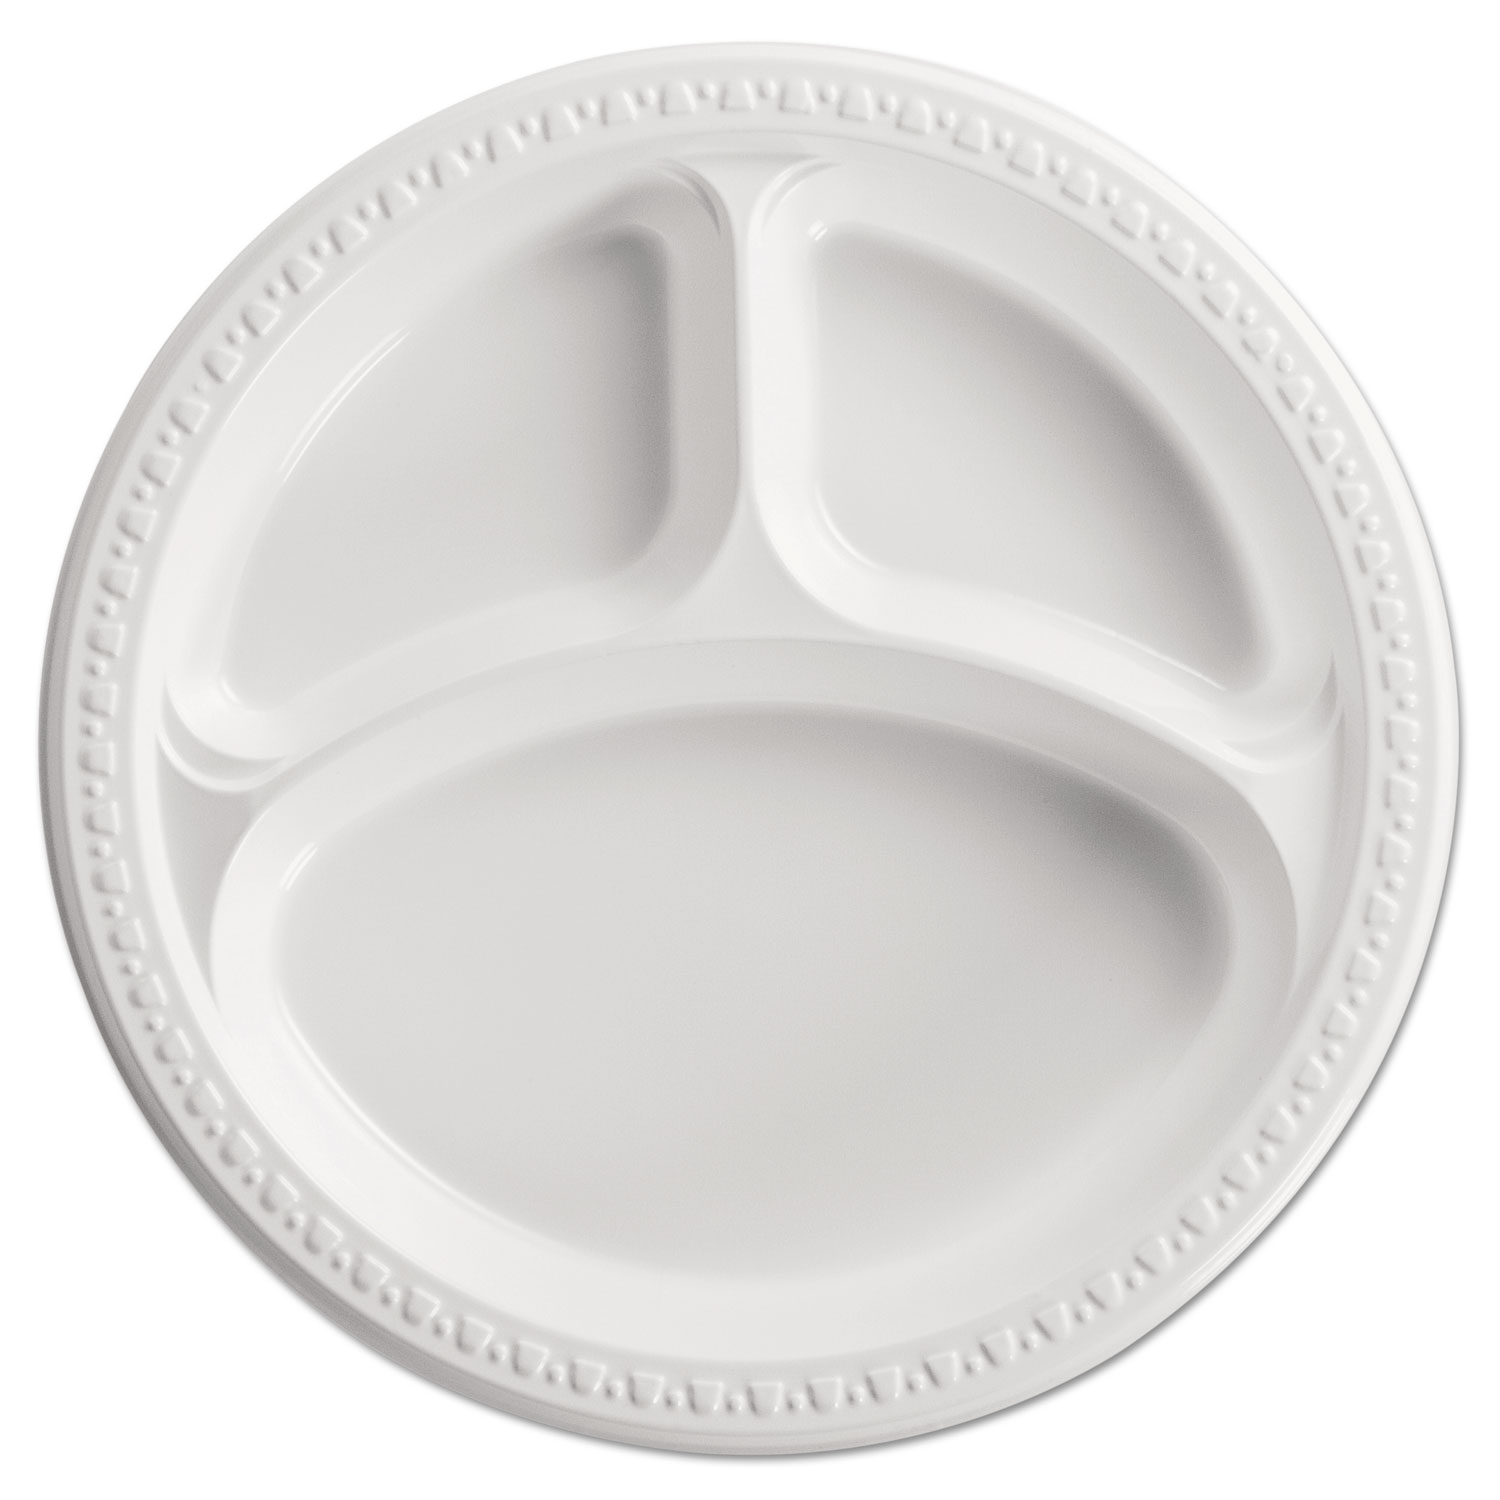 Heavyweight Plastic 3 Compartment Plates, 10 1/4